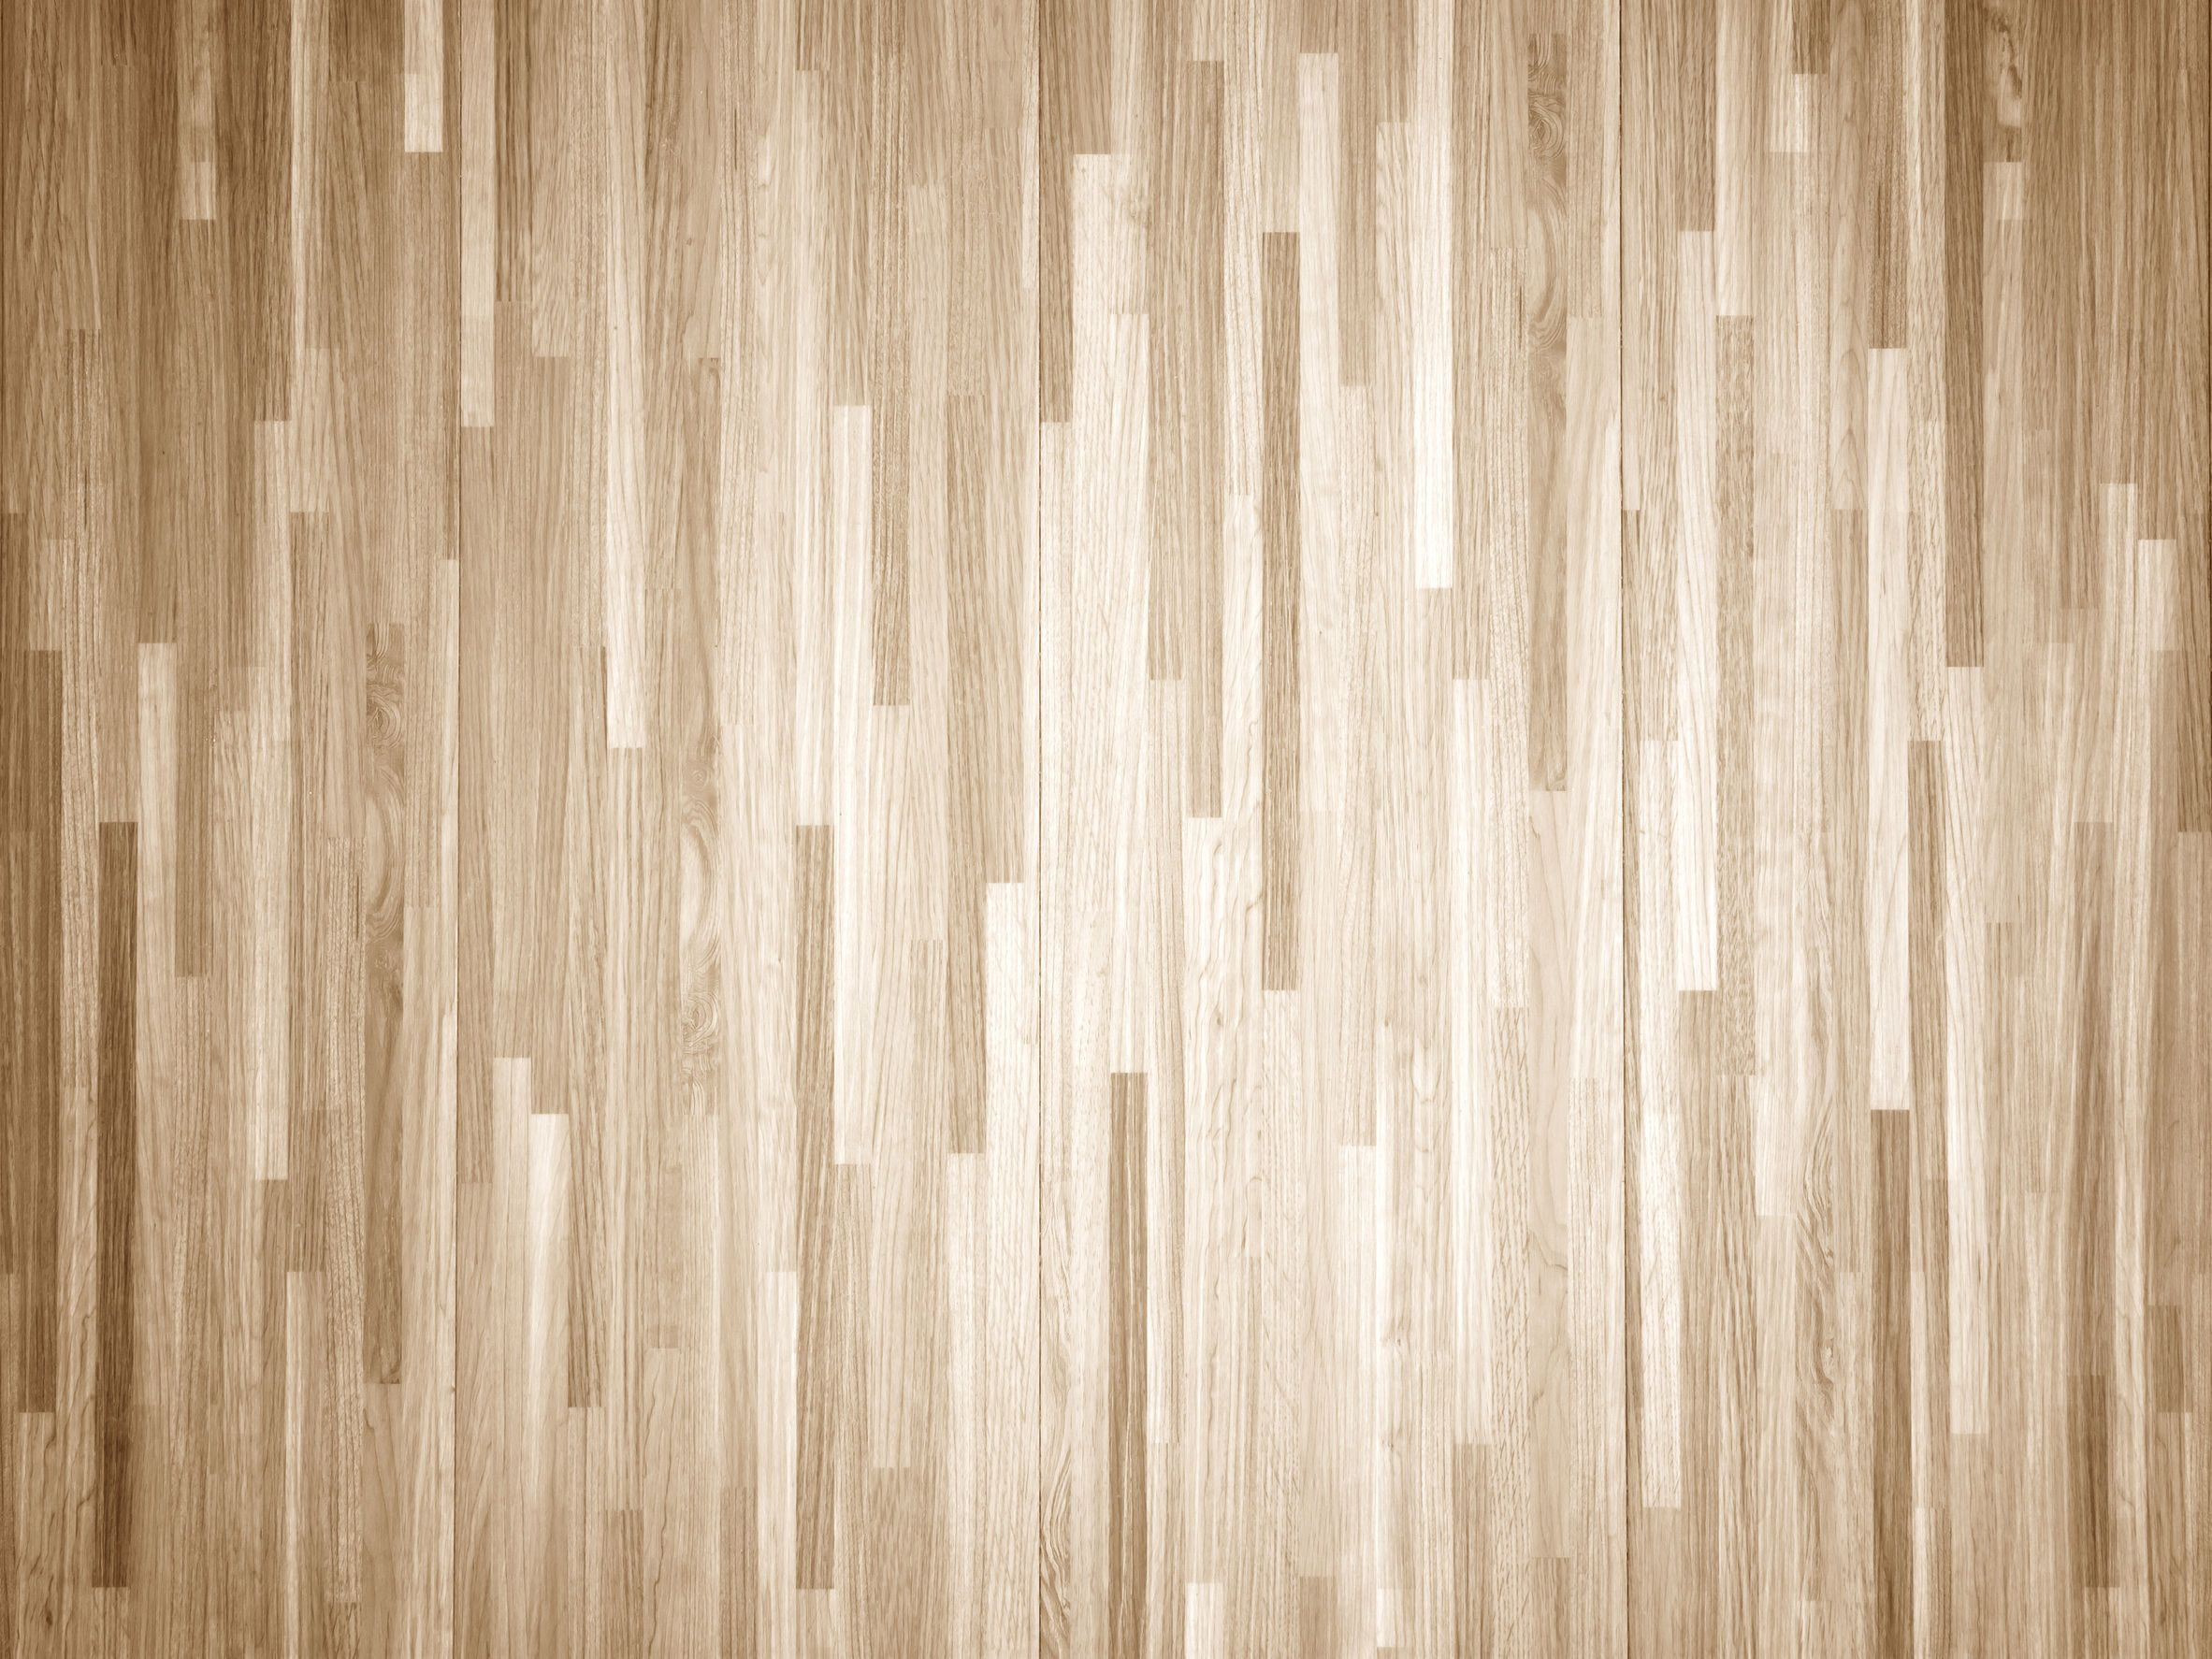 Hardwood Floor Care System Of How to Chemically Strip Wood Floors Woodfloordoctor Com for You